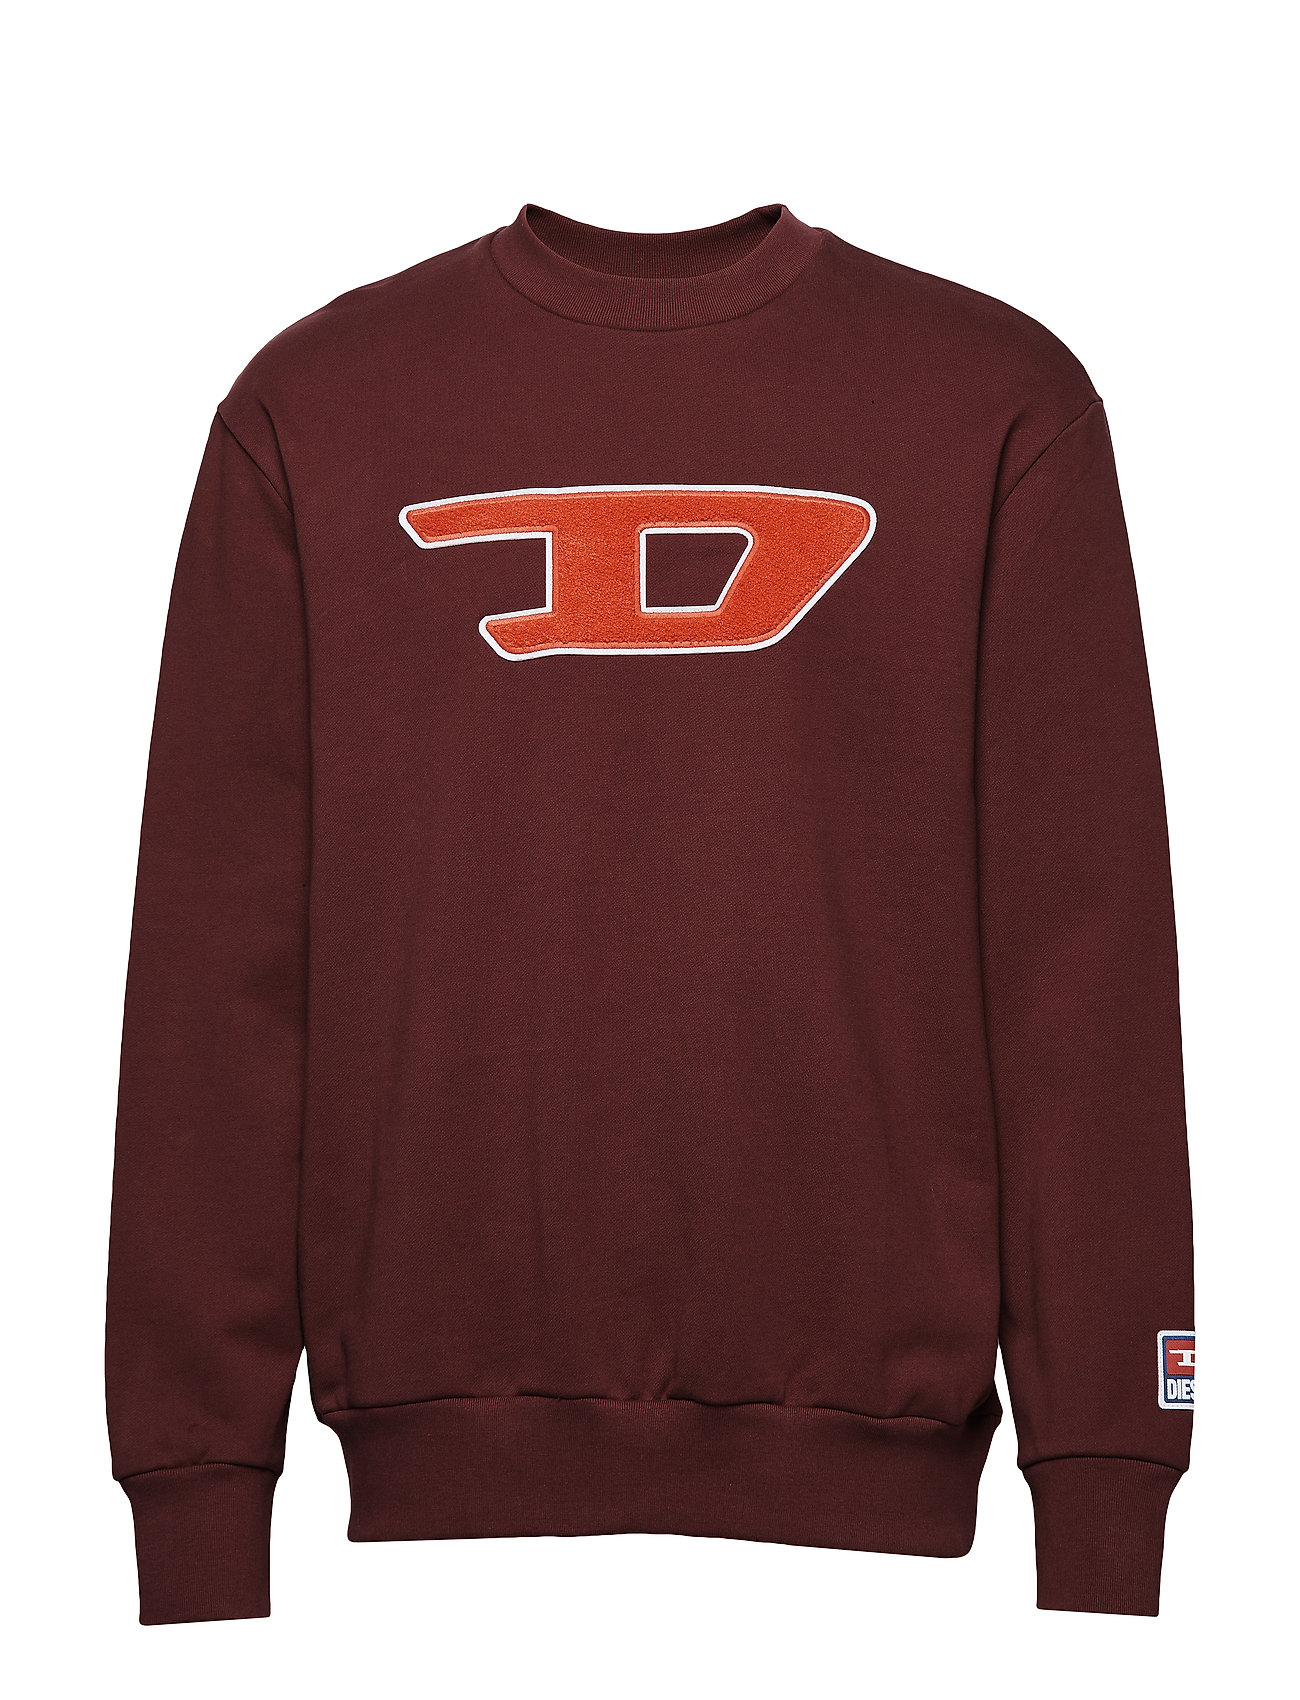 DIESEL S-Crew-Division-D Sweat-S Sweat-shirt Pullover Rot DIESEL MEN